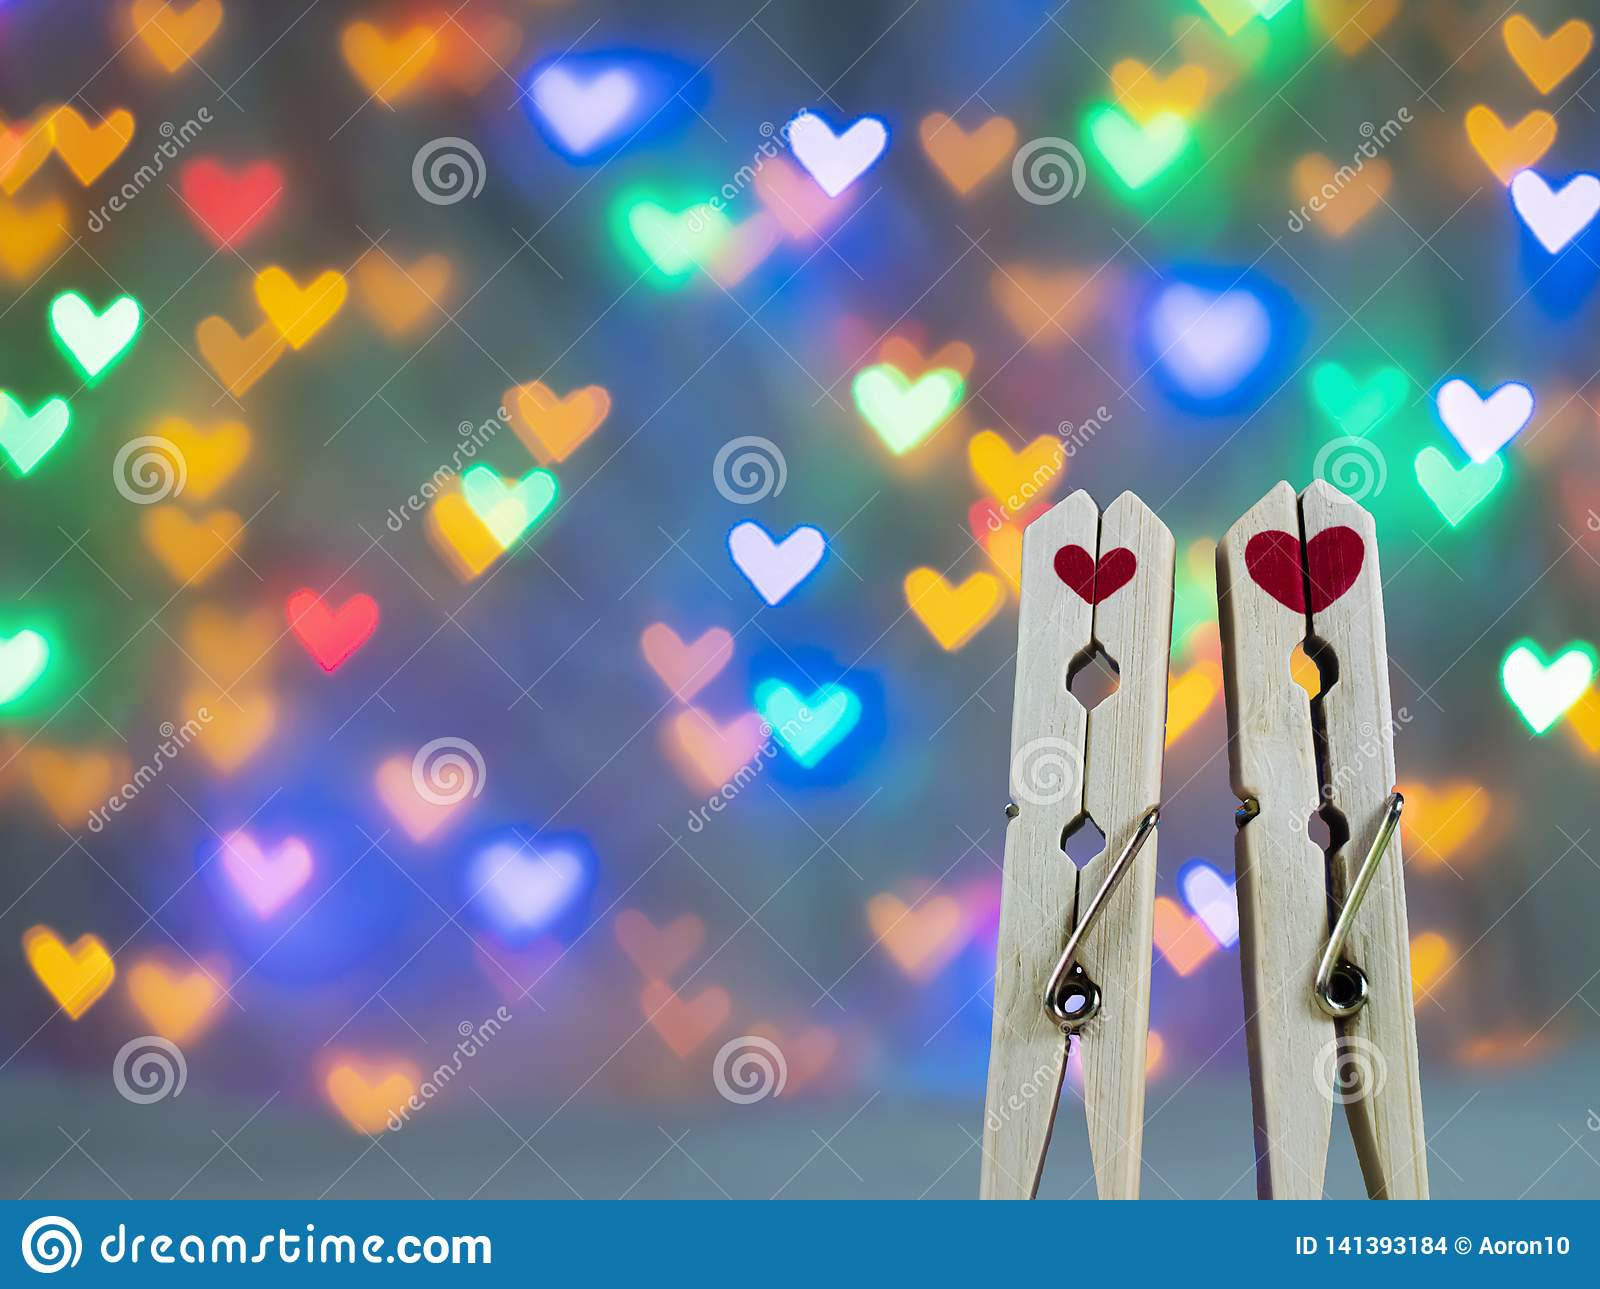 Cute wooden clothespin with red heart shape On a beautiful heart-shaped bokeh background For valentine